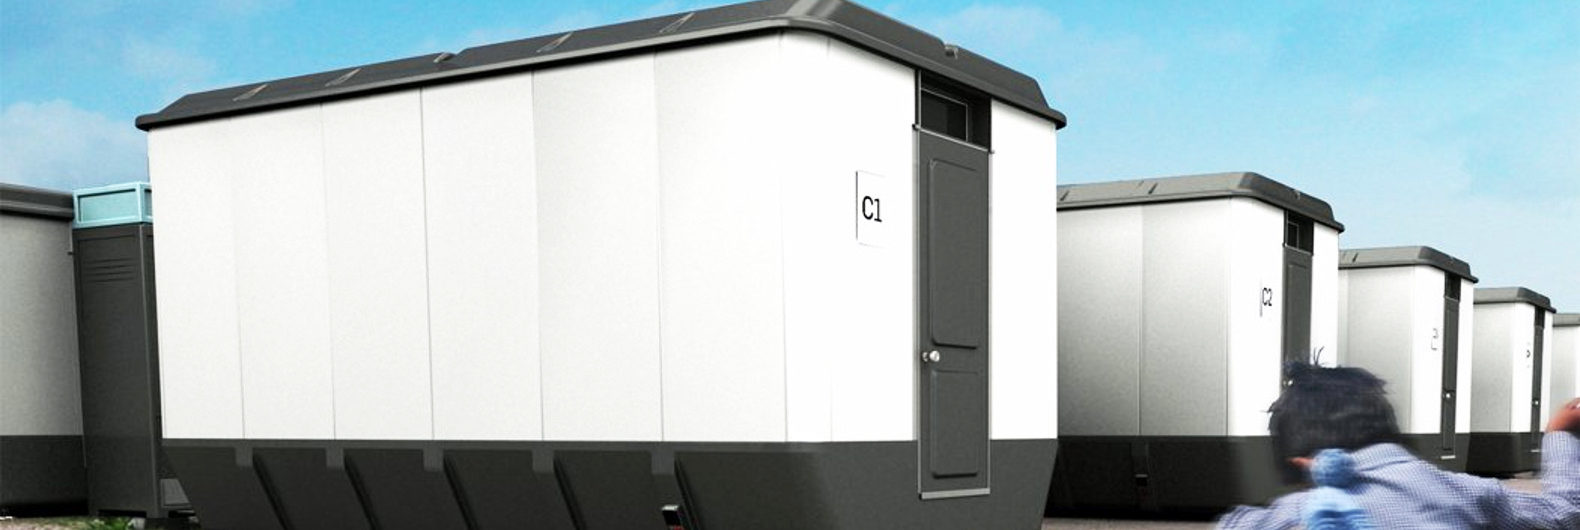 Shelter Pack emergency homes compress to 31-inch-tall slabs for easy ...